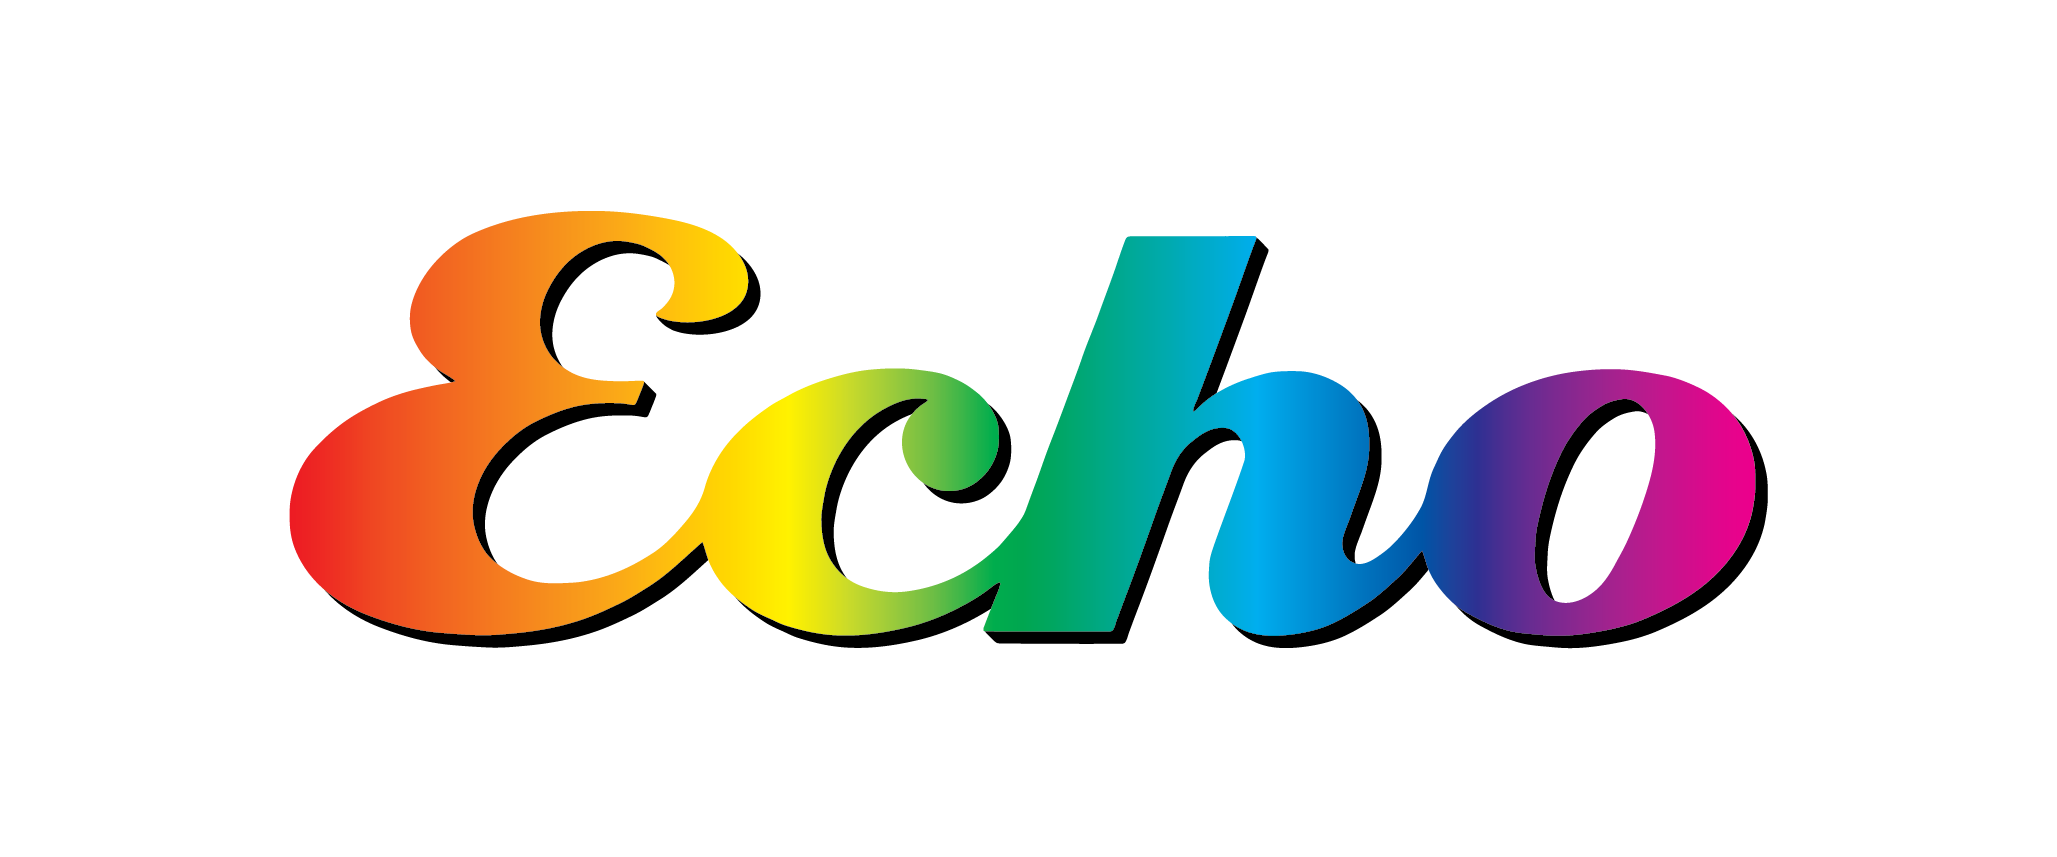 http://byronwritersfestival.com/wp-content/uploads/2021/06/Echo-logo.png